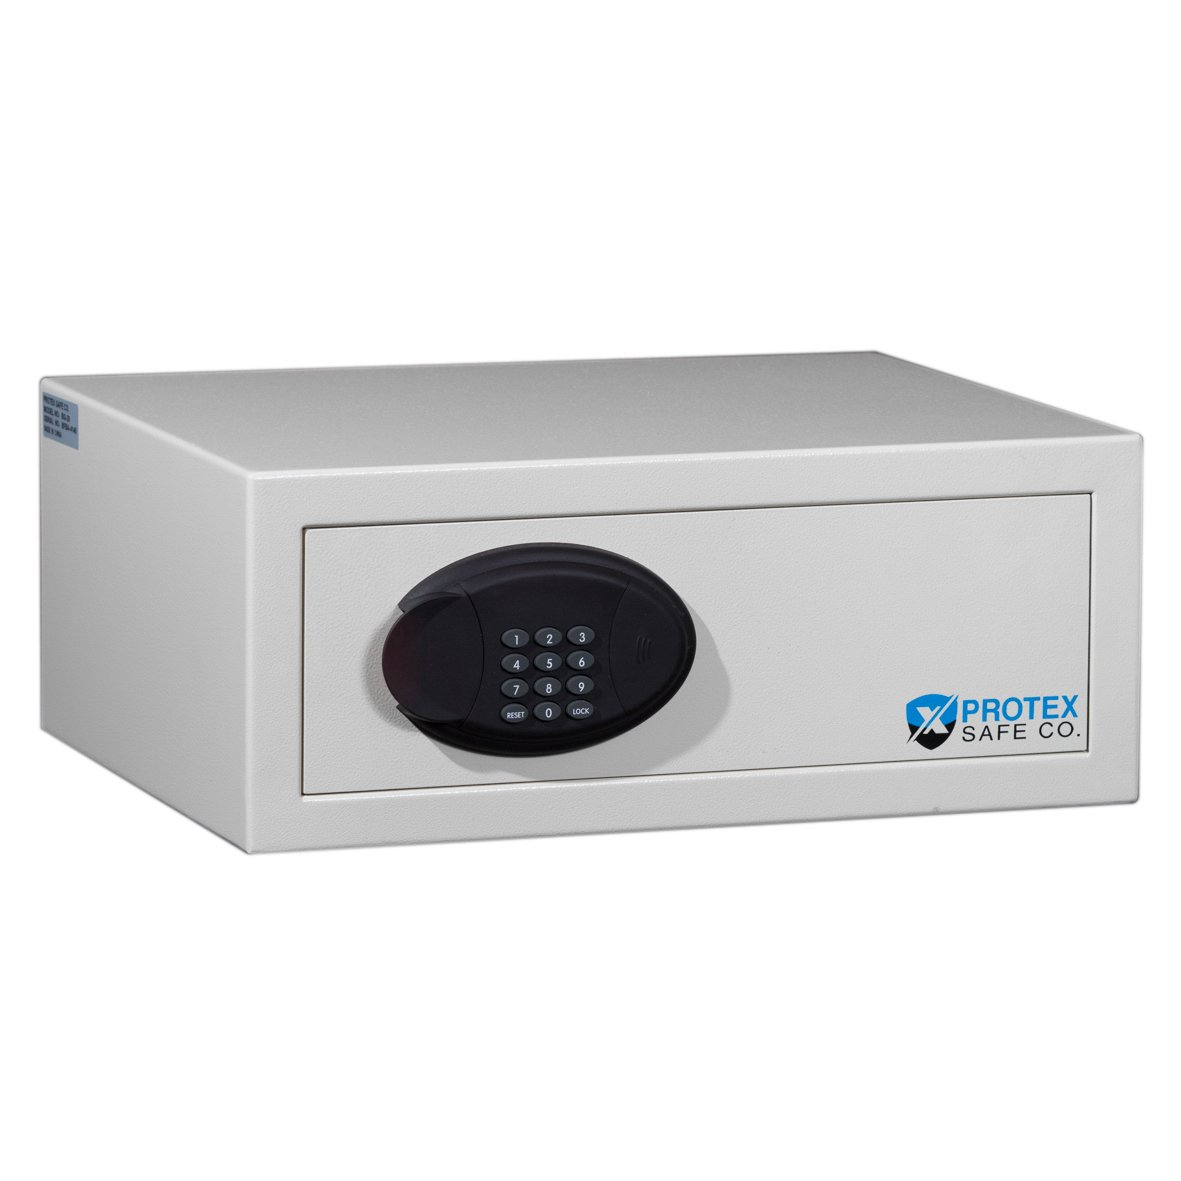 Protex Hotel/Personal Laptop Electronic Safe (BG-20) by Protex